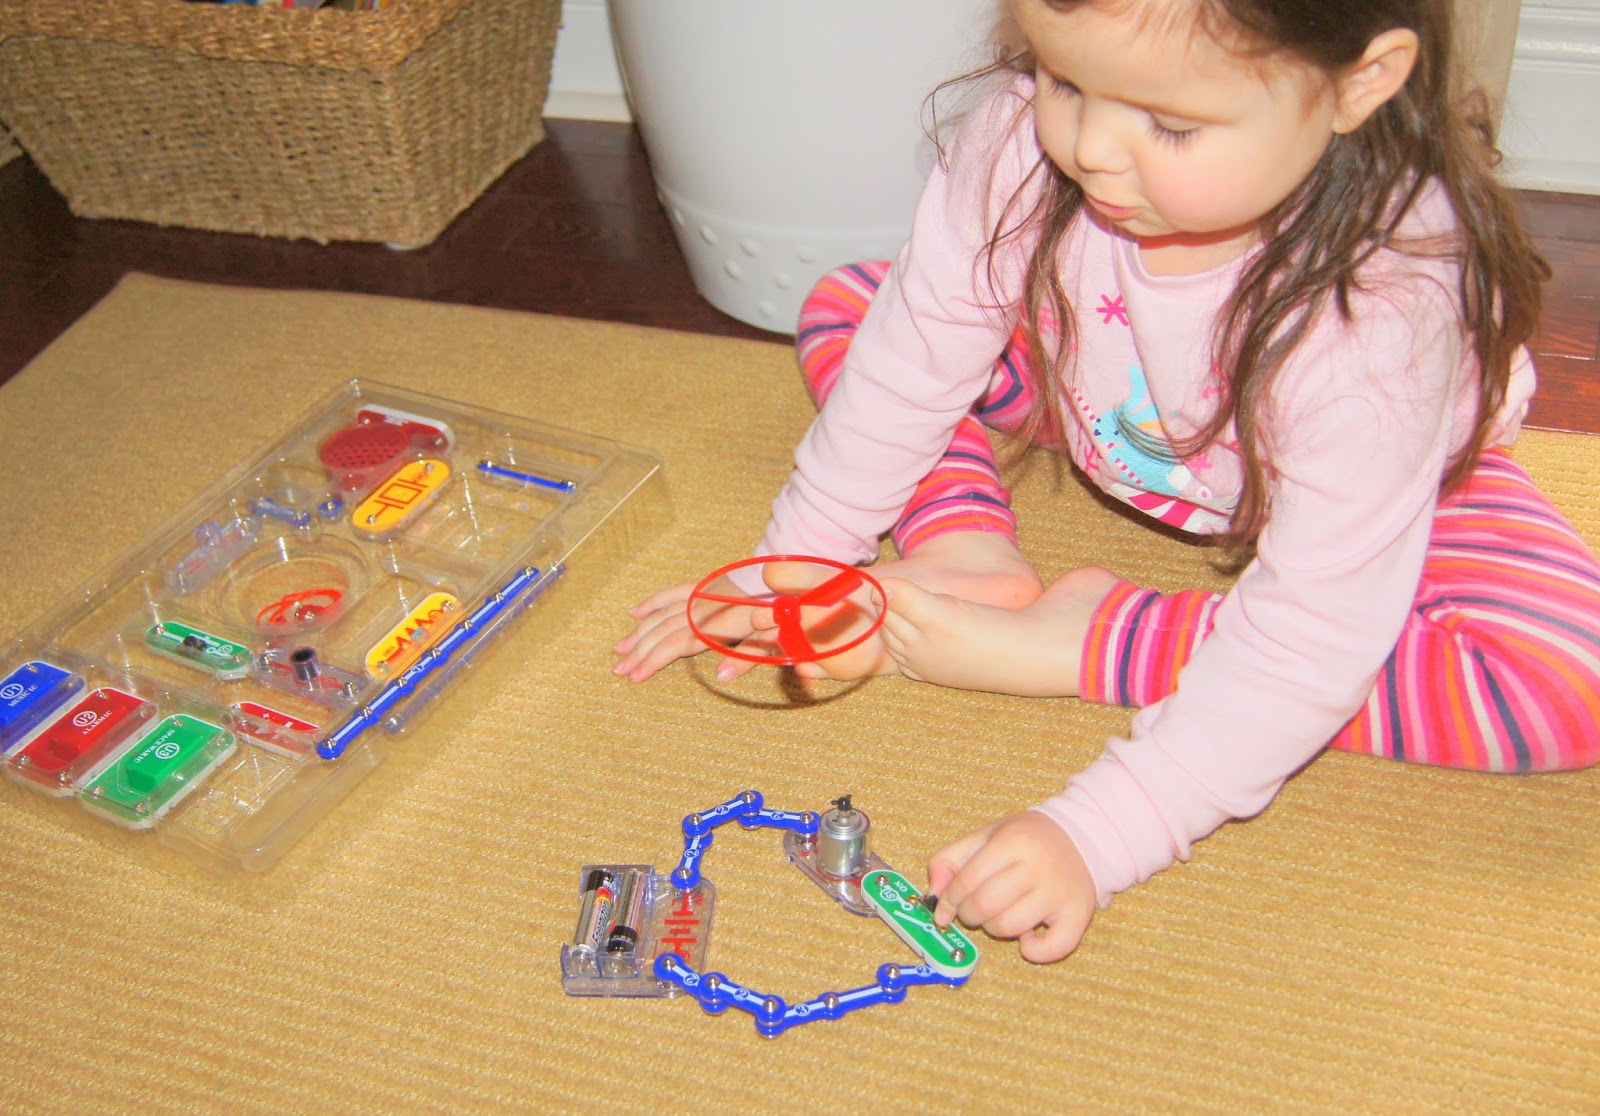 Circuits Electronics For Kids Science At Home Making Snap Jr 100 Kit The Sc Can Also Be Upgraded To 300 Pro Or Extreme With Purchase Of A Uc 30